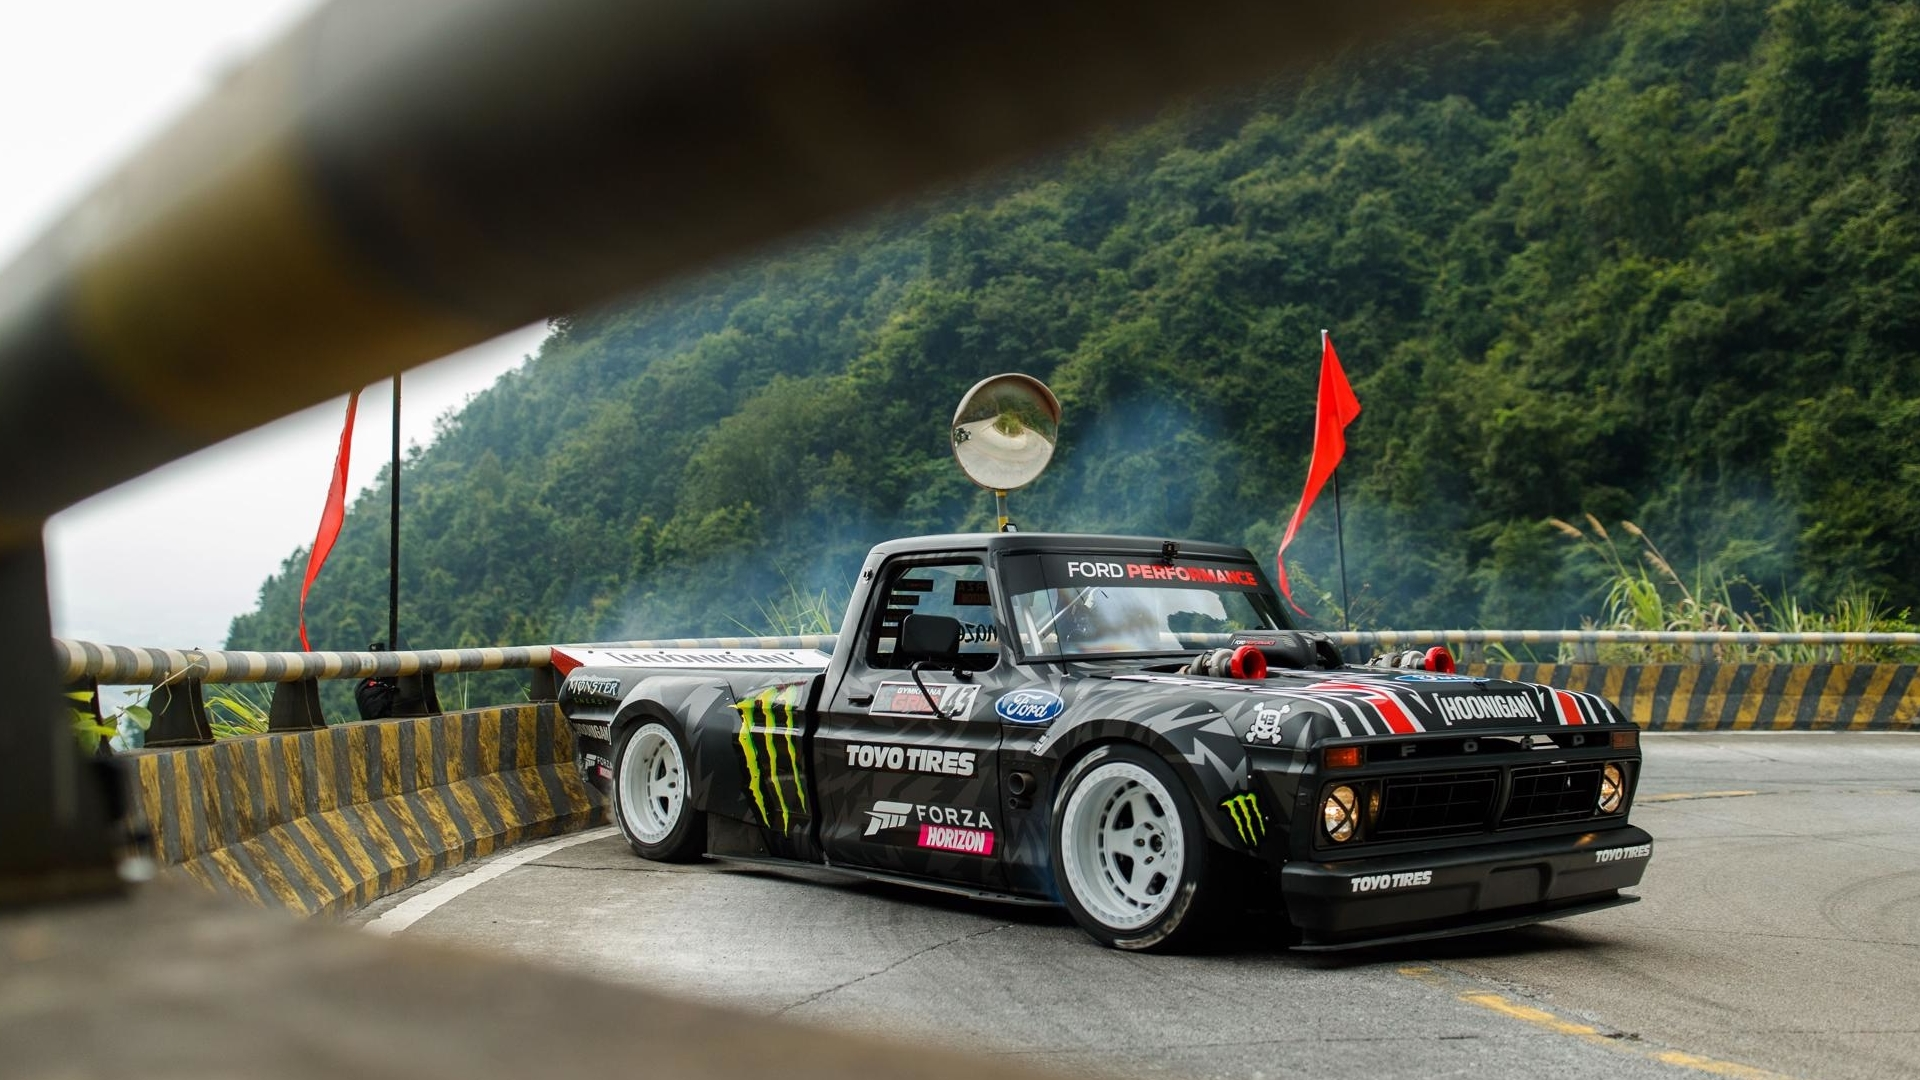 Ken Block has released the full eight-minute-long Climbhana footage of his rapid ascension to the pinnacle of the Tianmen Mountain, China.